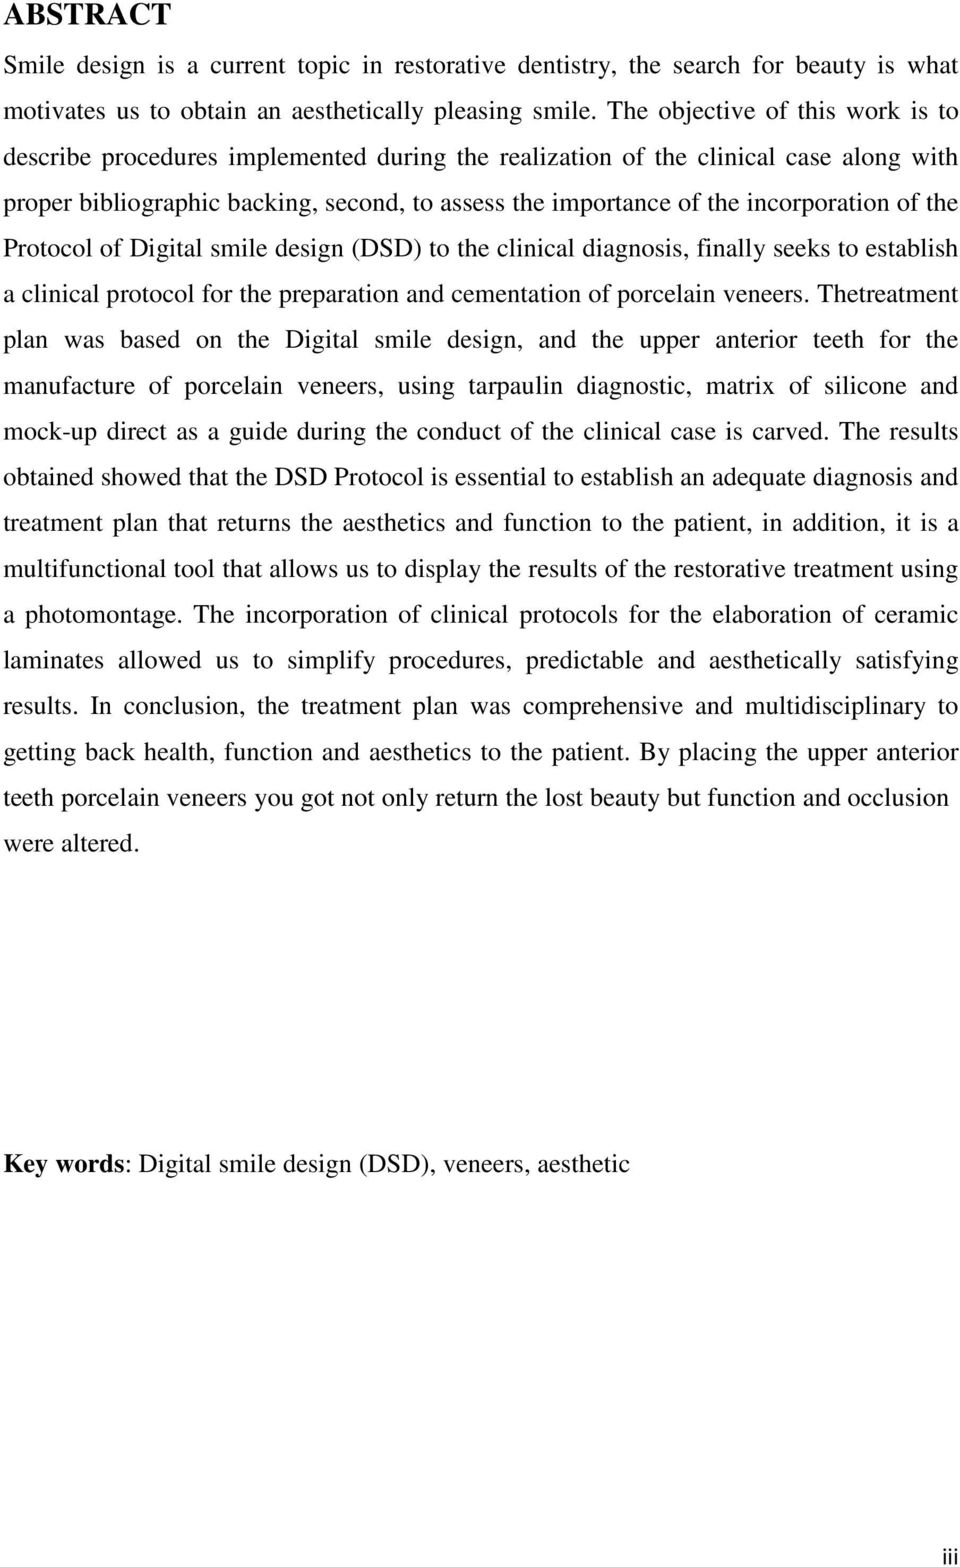 incorporation of the Protocol of Digital smile design (DSD) to the clinical diagnosis, finally seeks to establish a clinical protocol for the preparation and cementation of porcelain veneers.